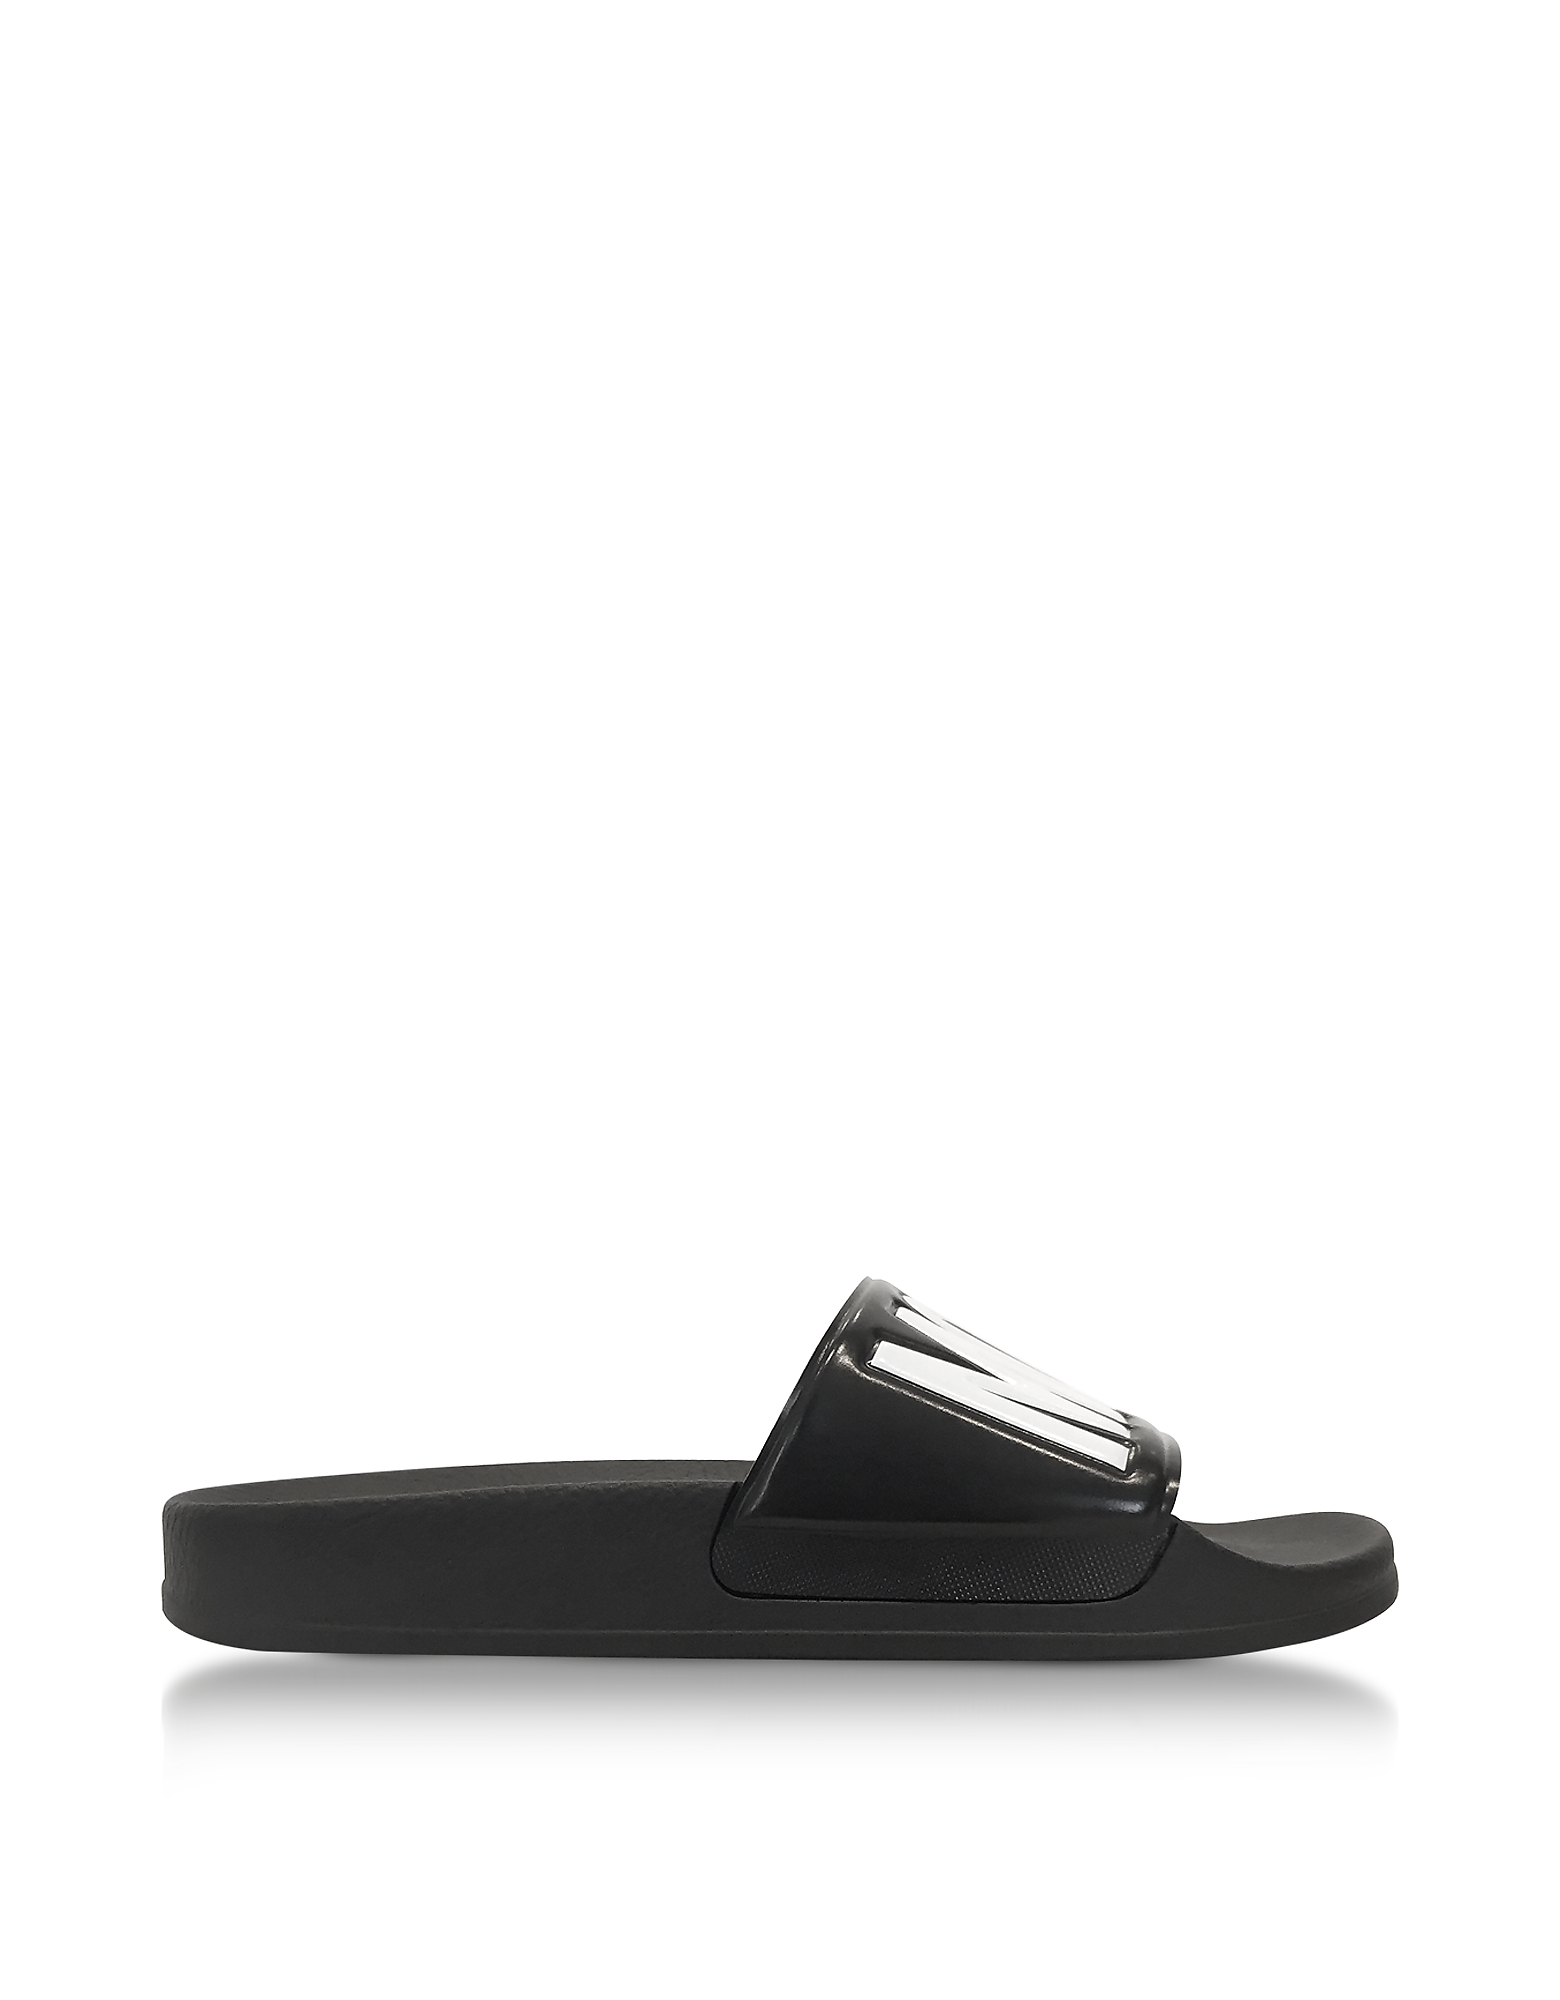 Moschino Shoes, Black Pool Slider Sandals w/White Signature Logo